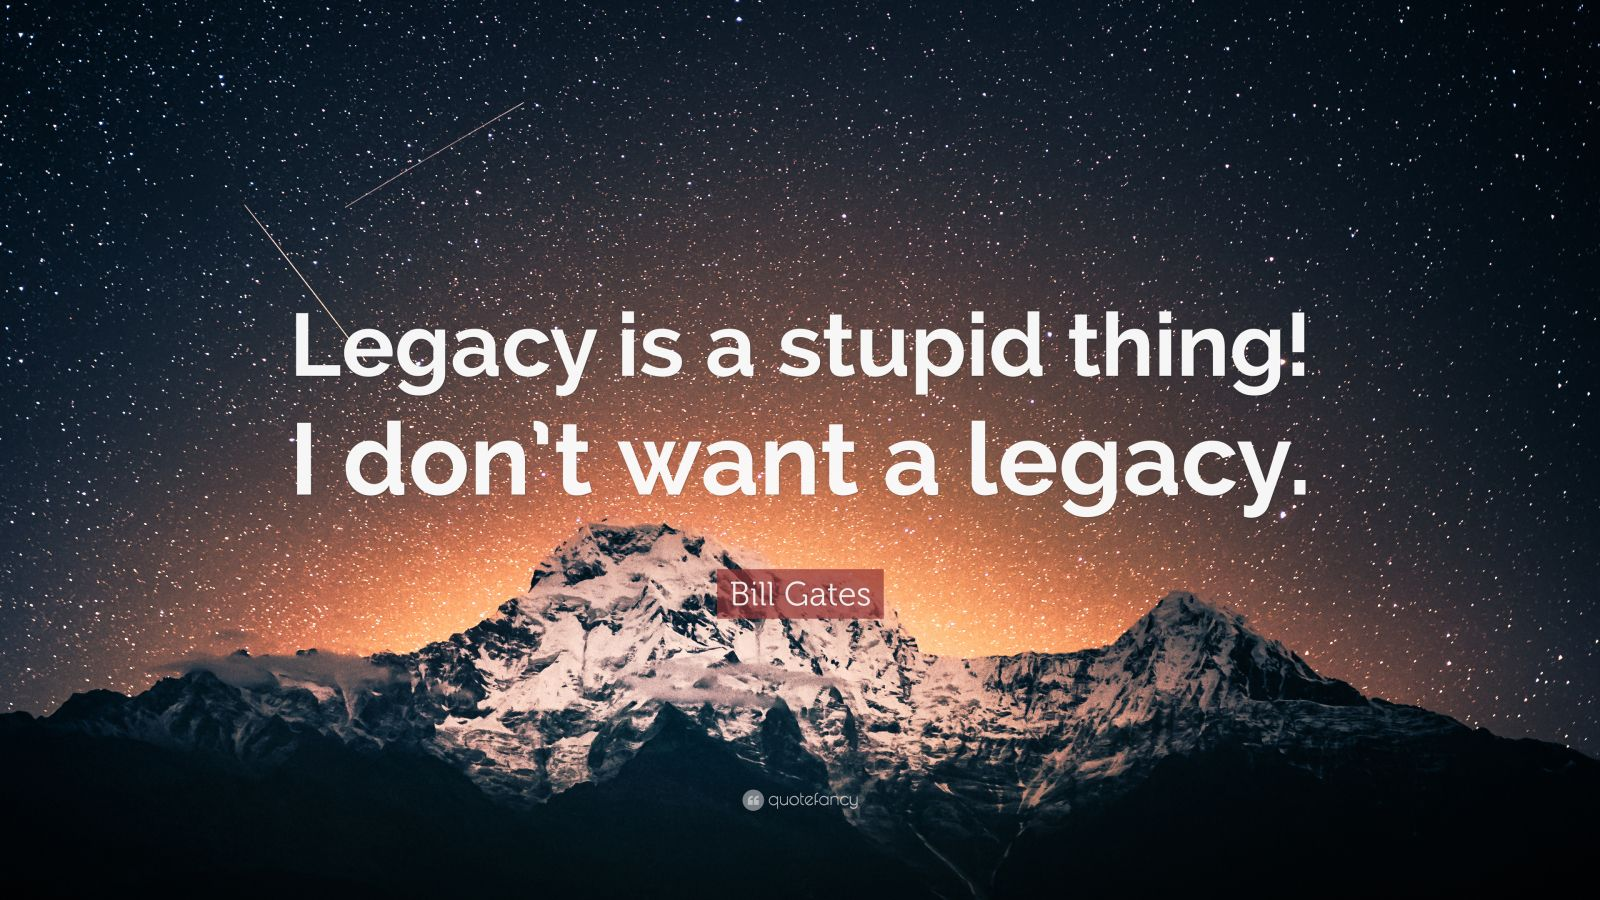 """Bill Gates Quote: """"Legacy is a stupid thing! I don't want a legacy."""""""